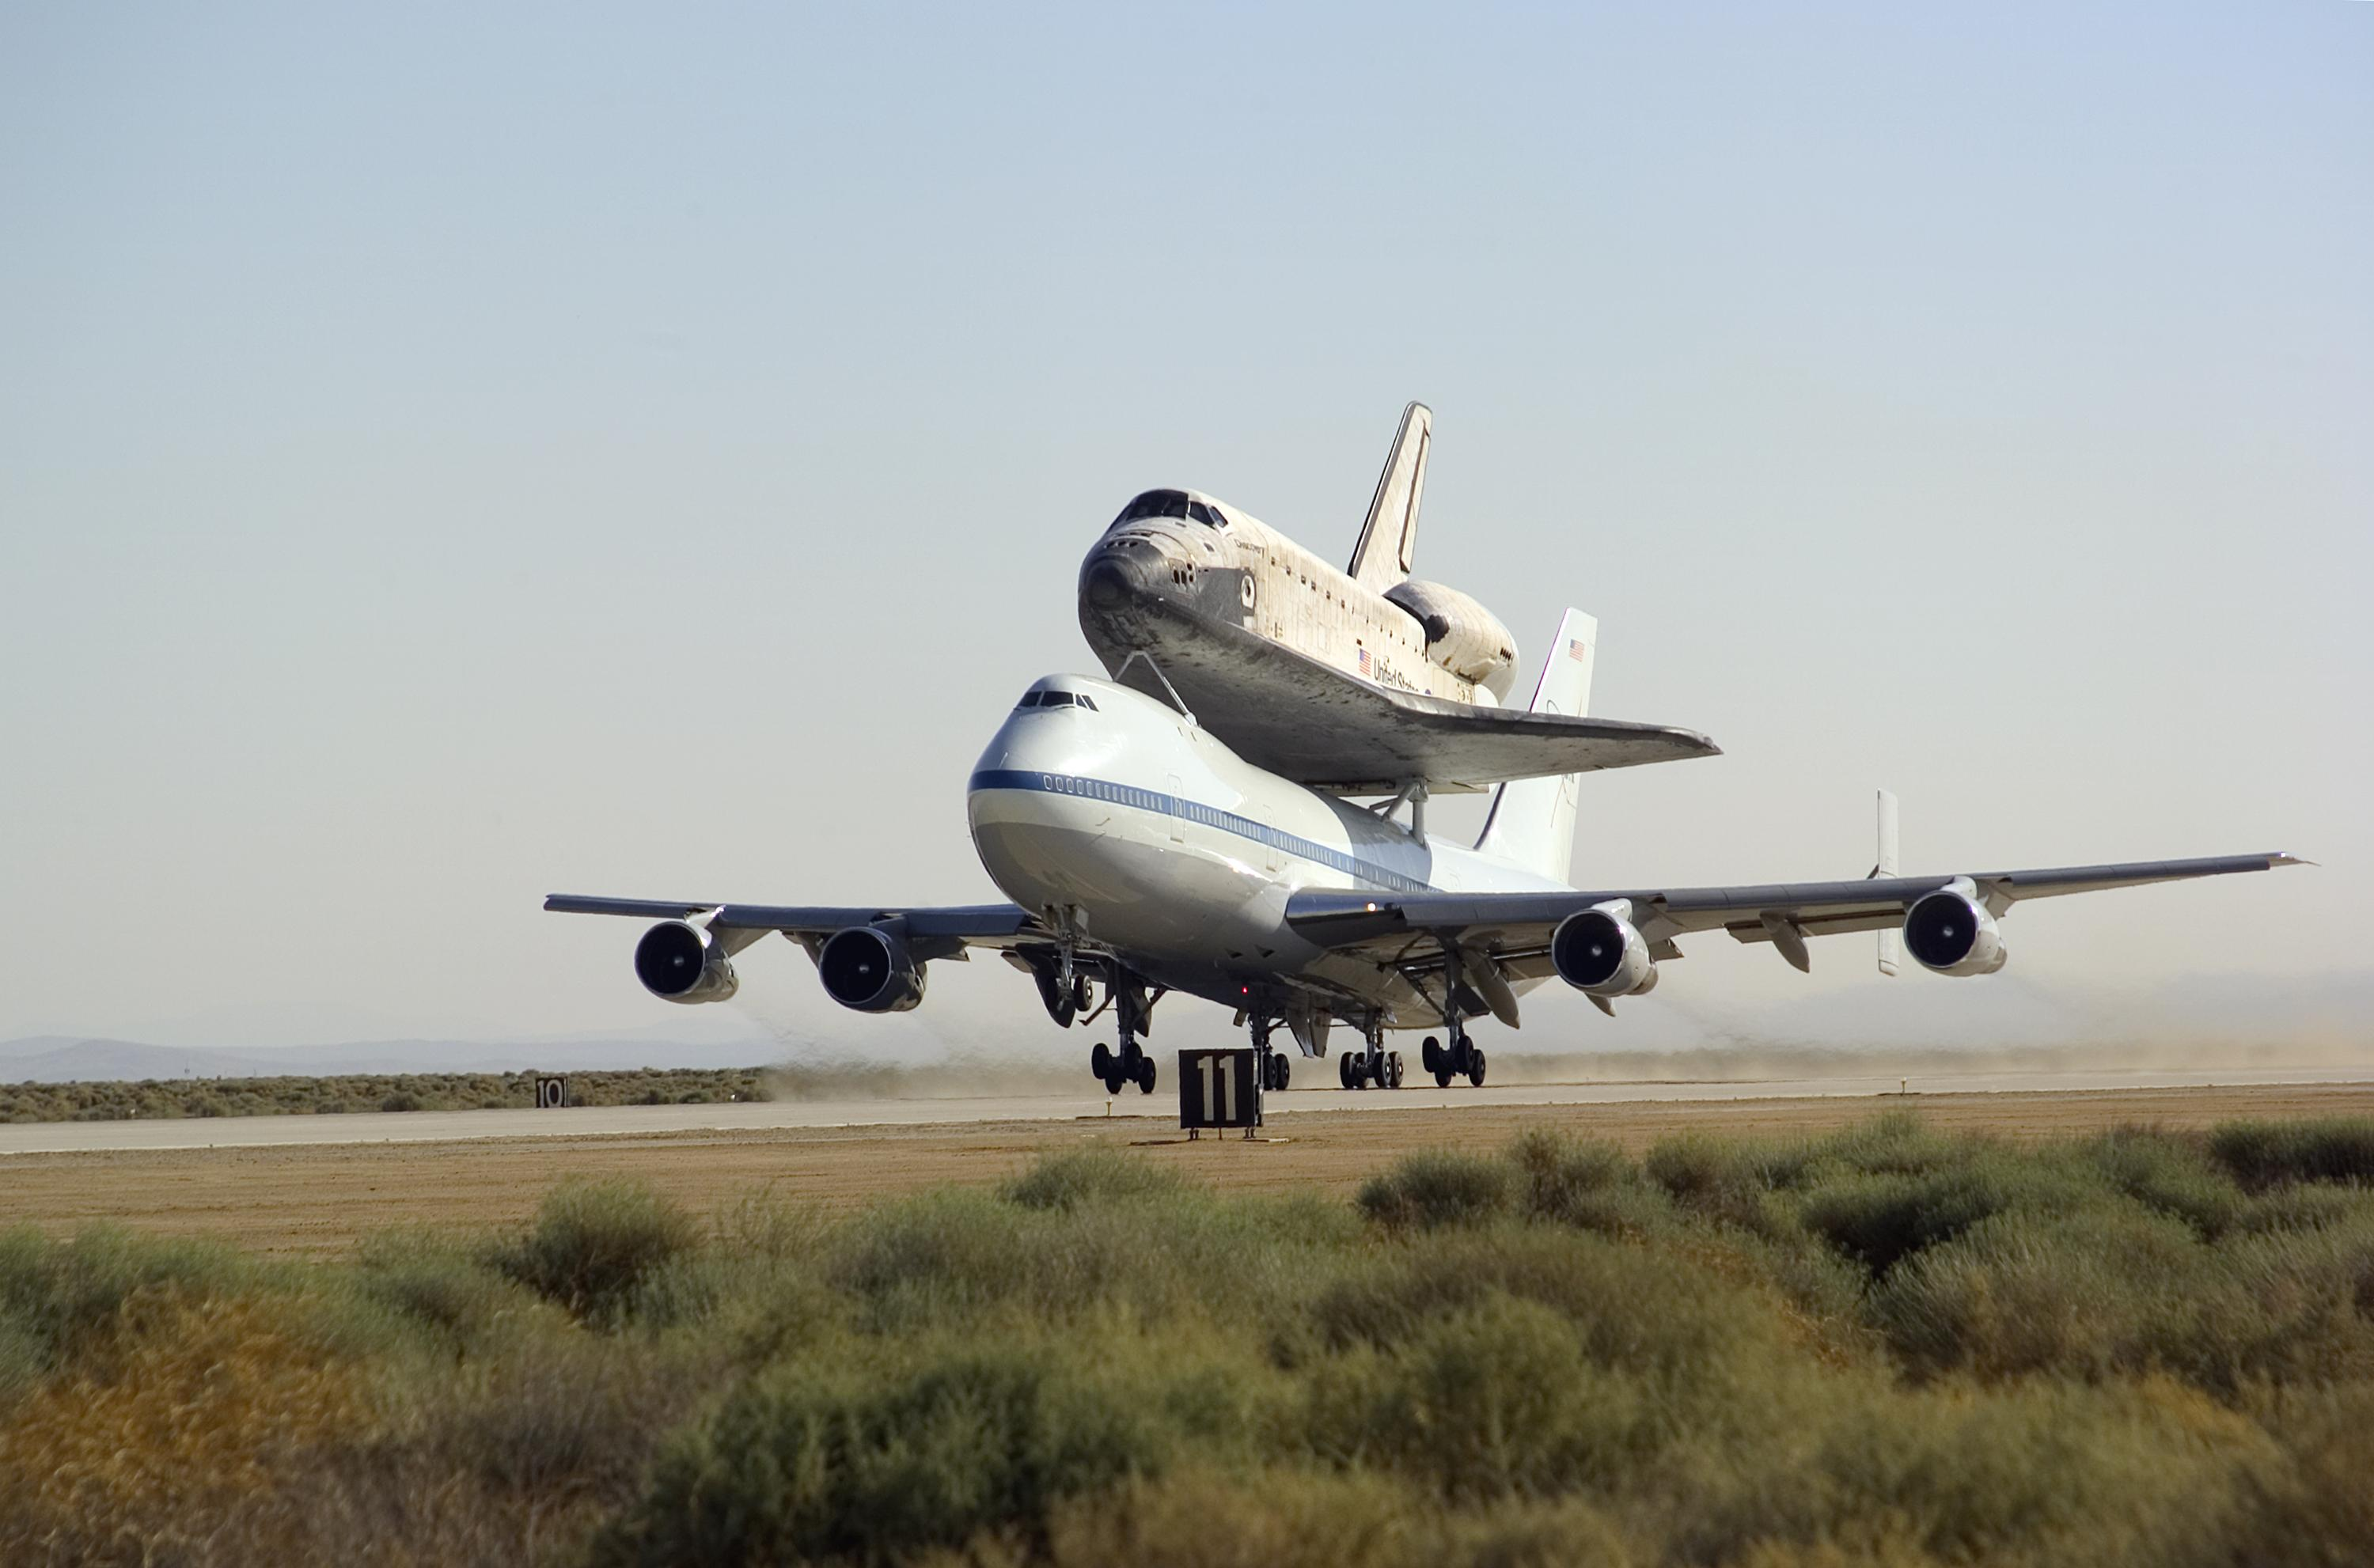 space shuttle landing on aircraft carrier - photo #37